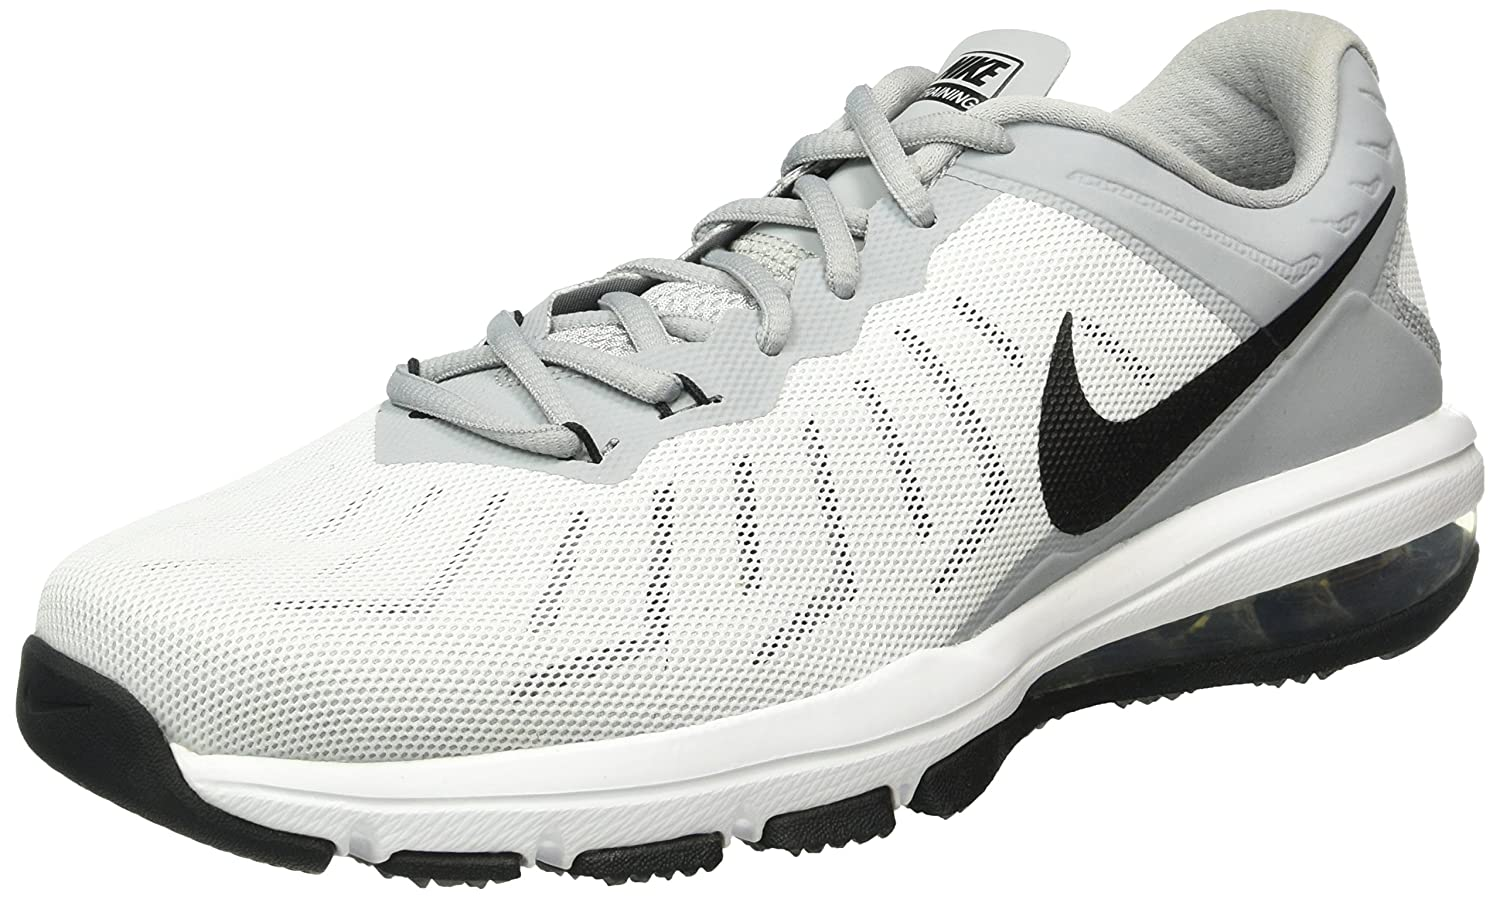 nike am cross training shoes